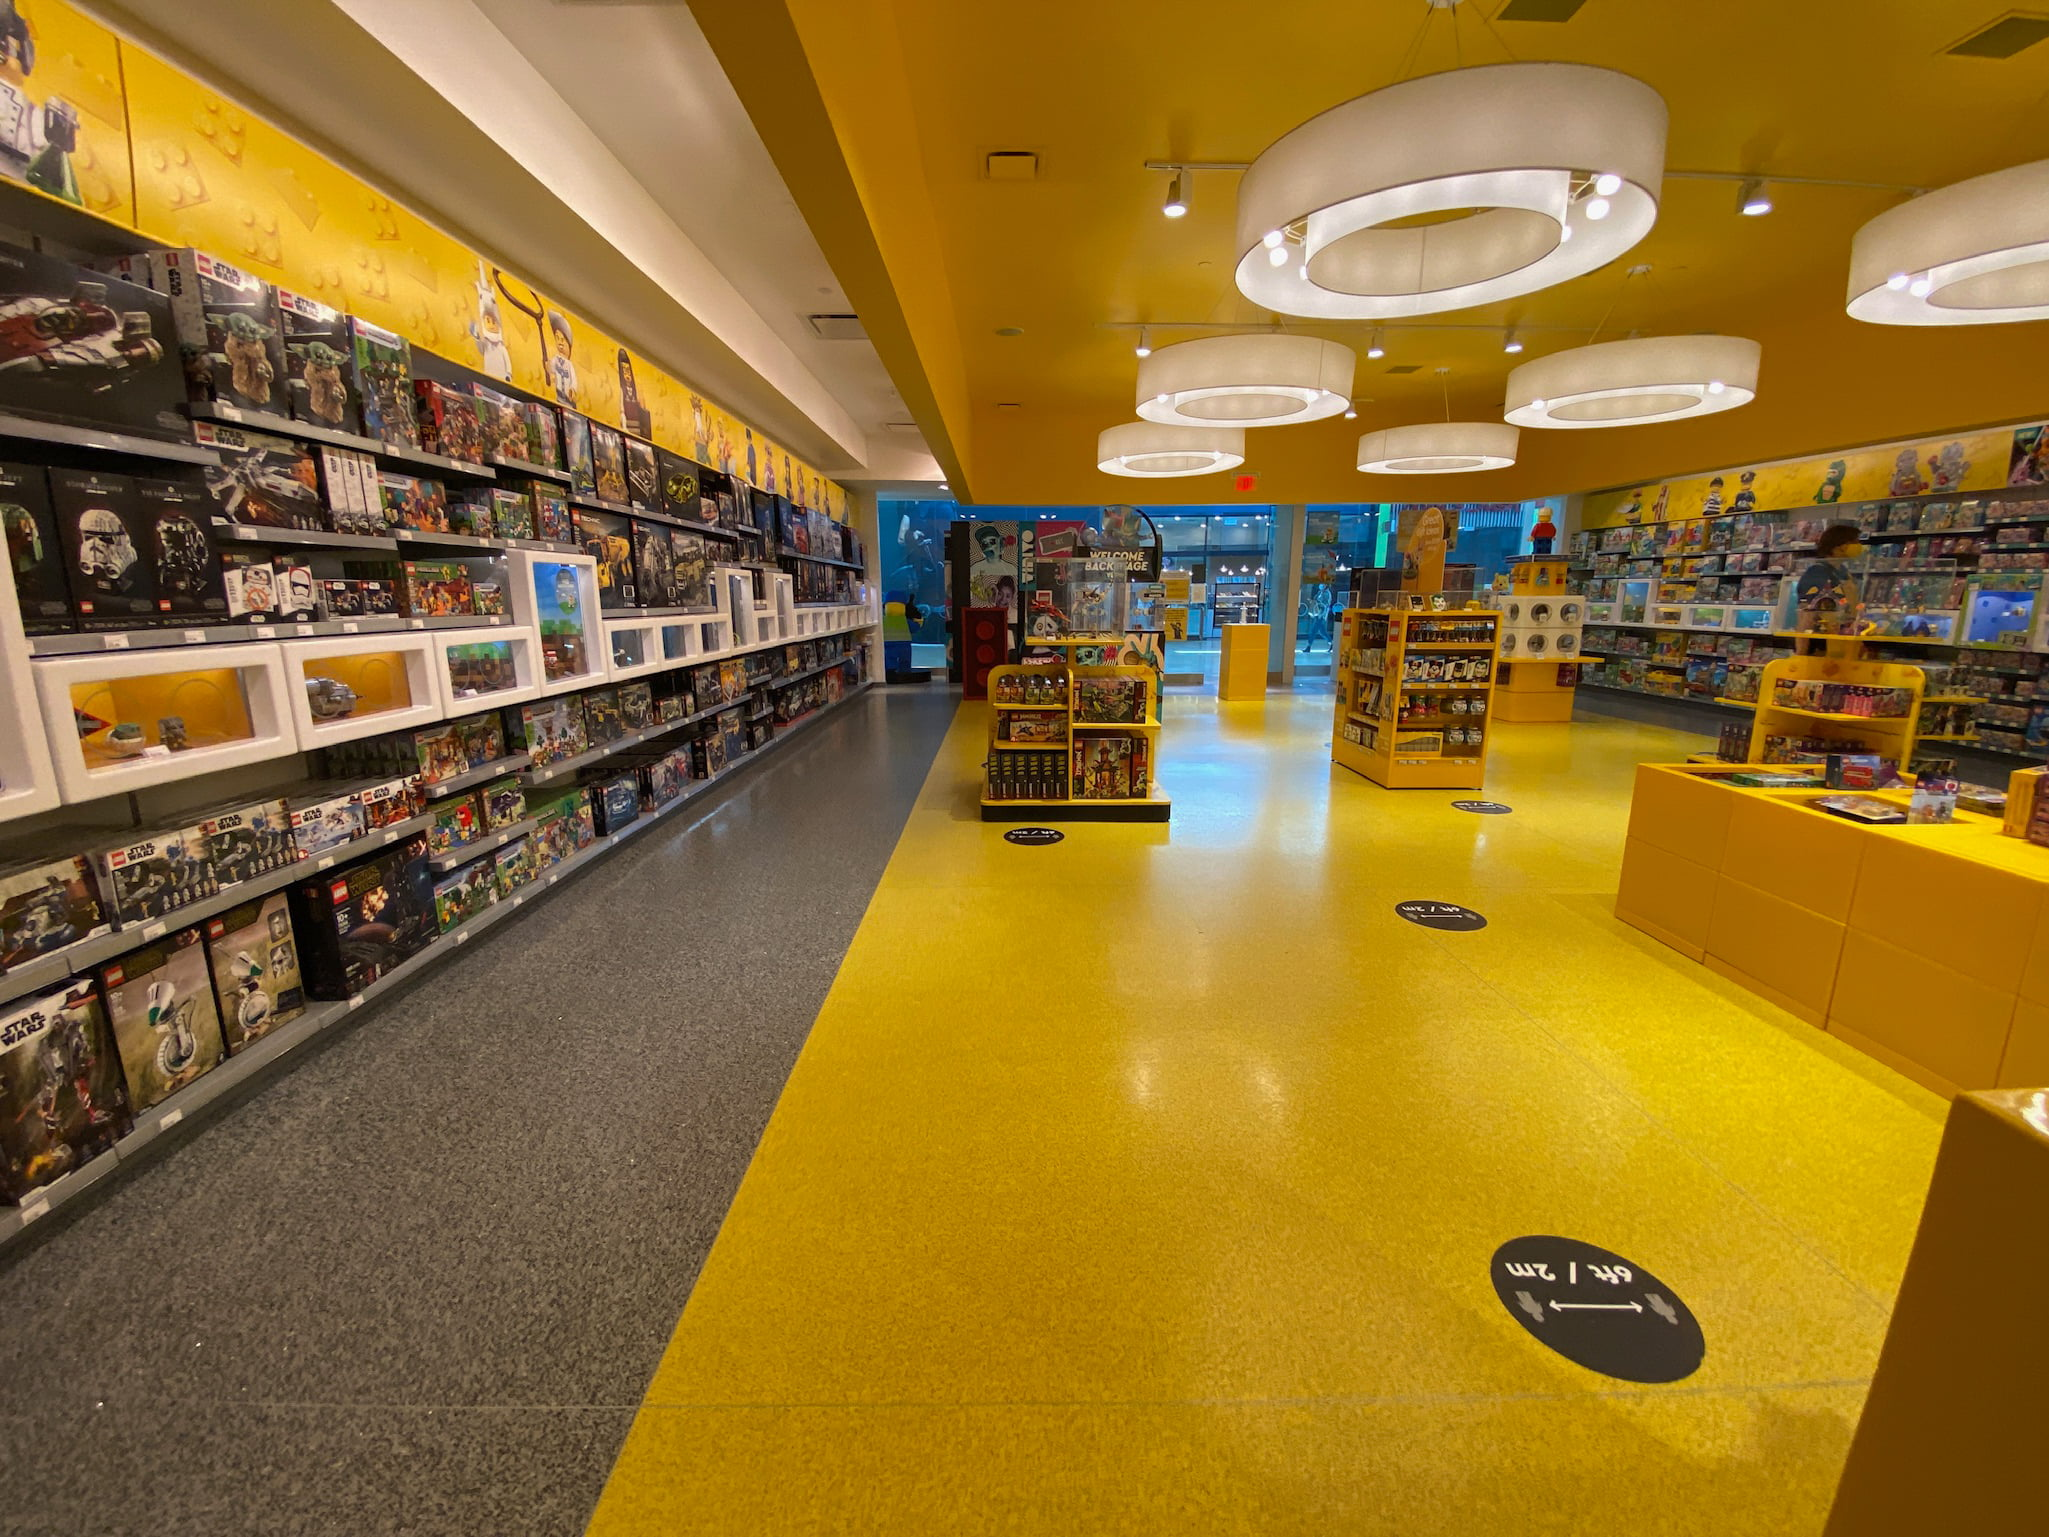 Lego Store at Yorkdale